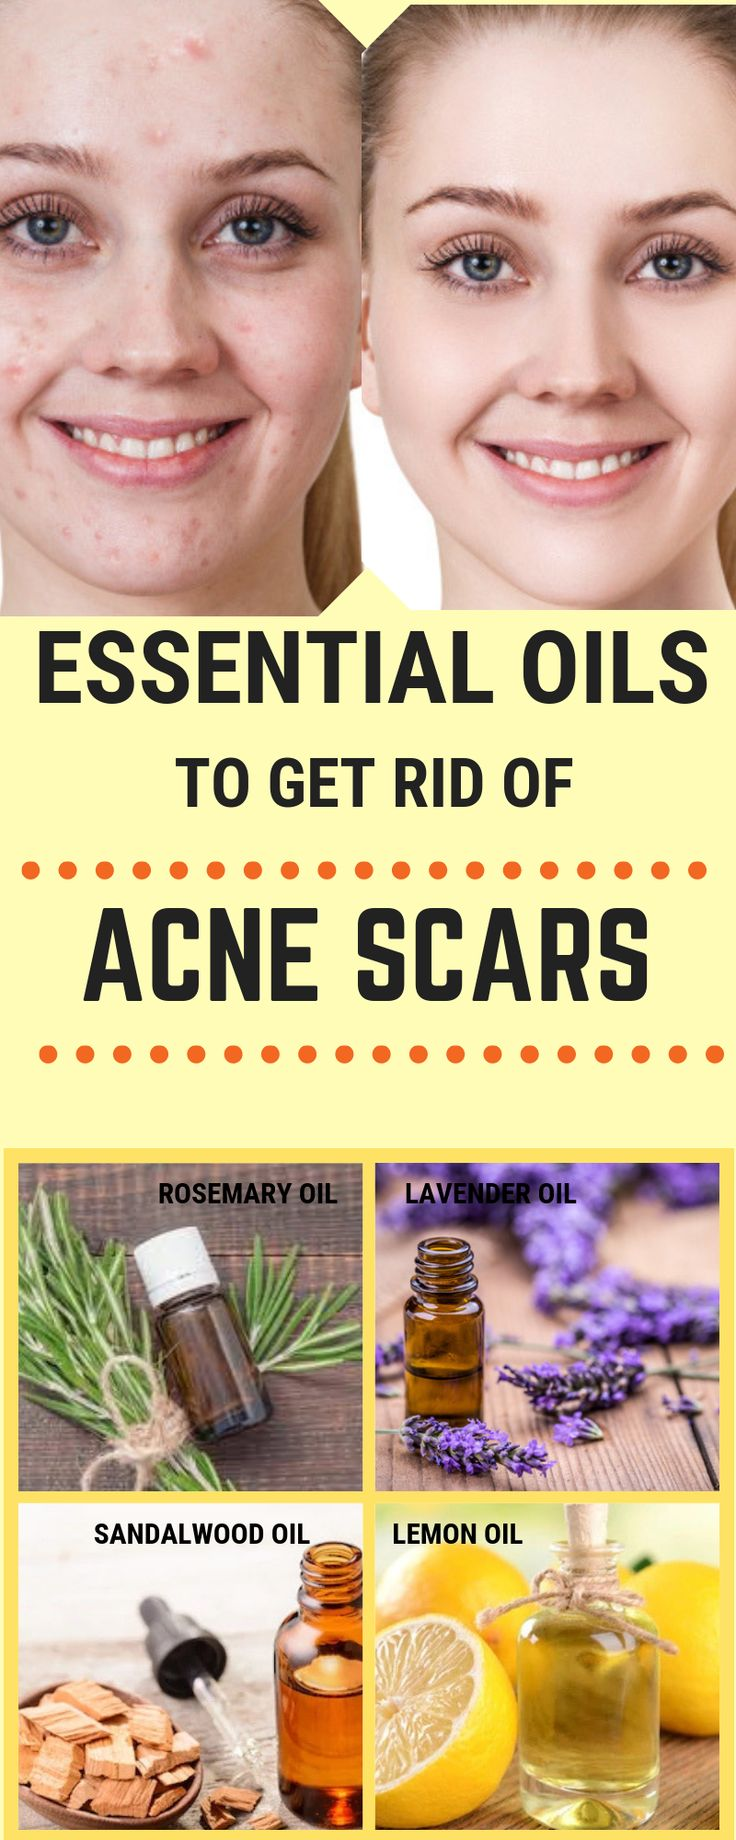 Oils that will erase all your acne scars like MAGIC